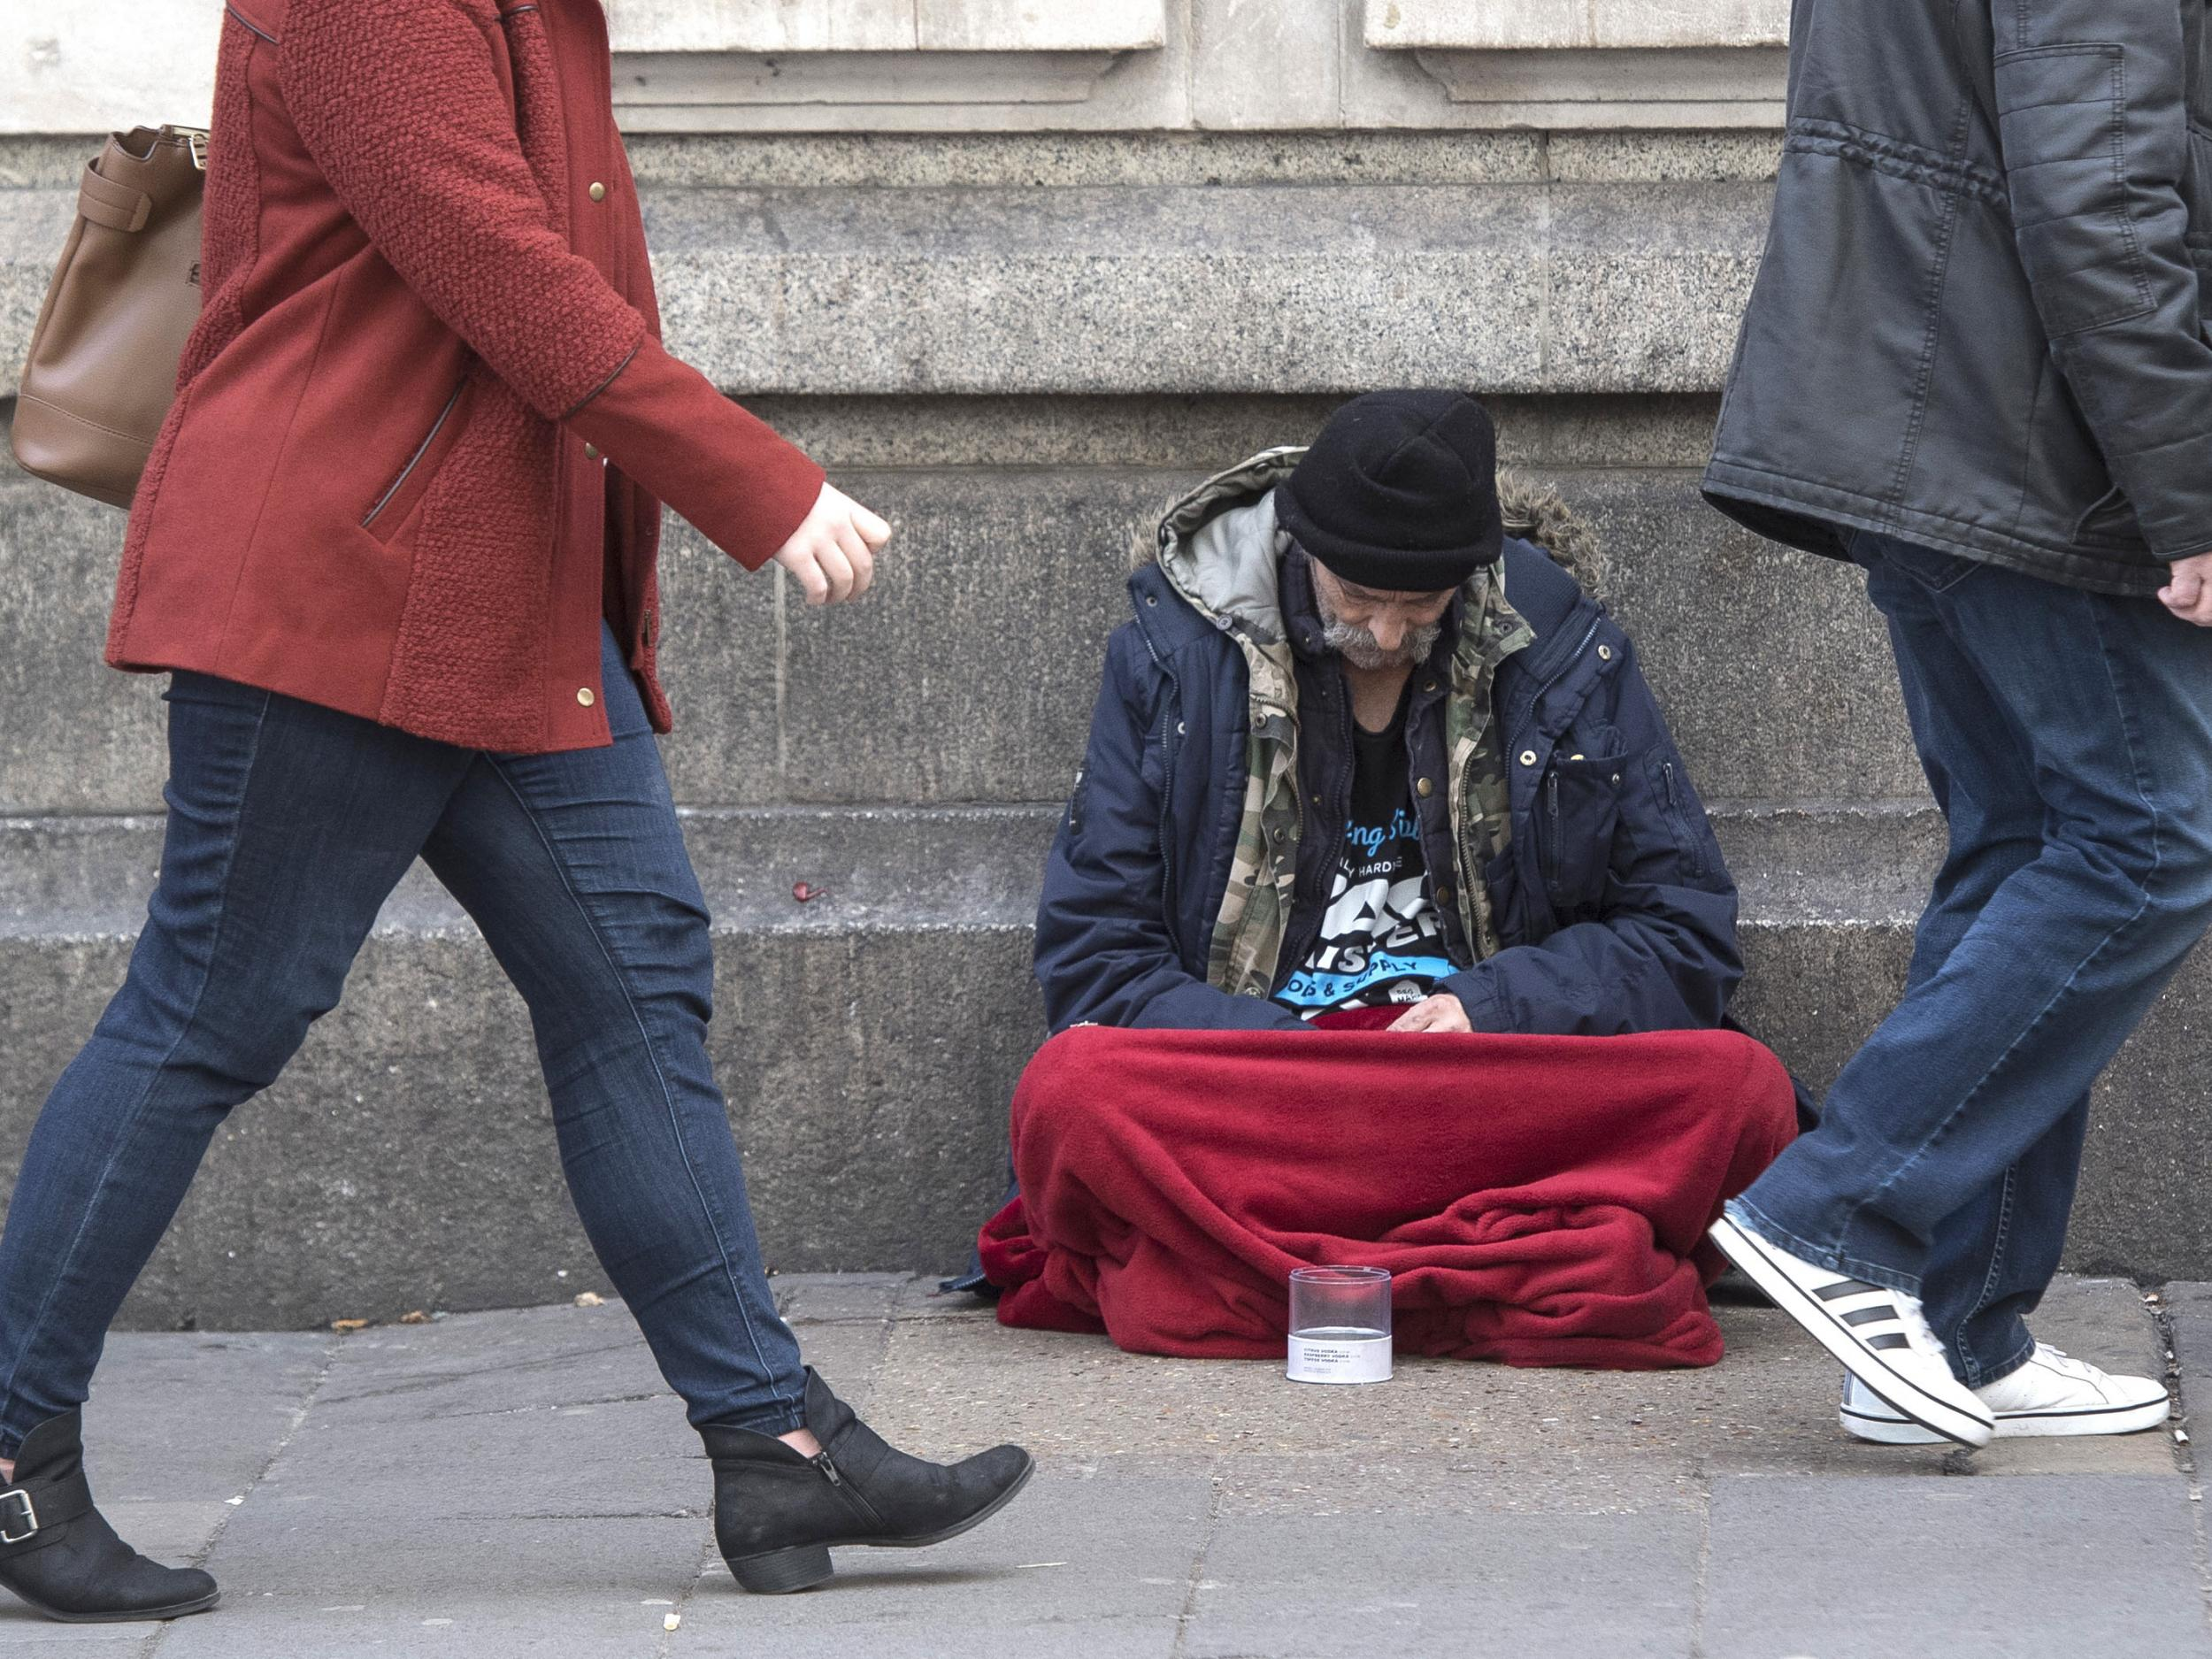 Finland has practically ended homelessness